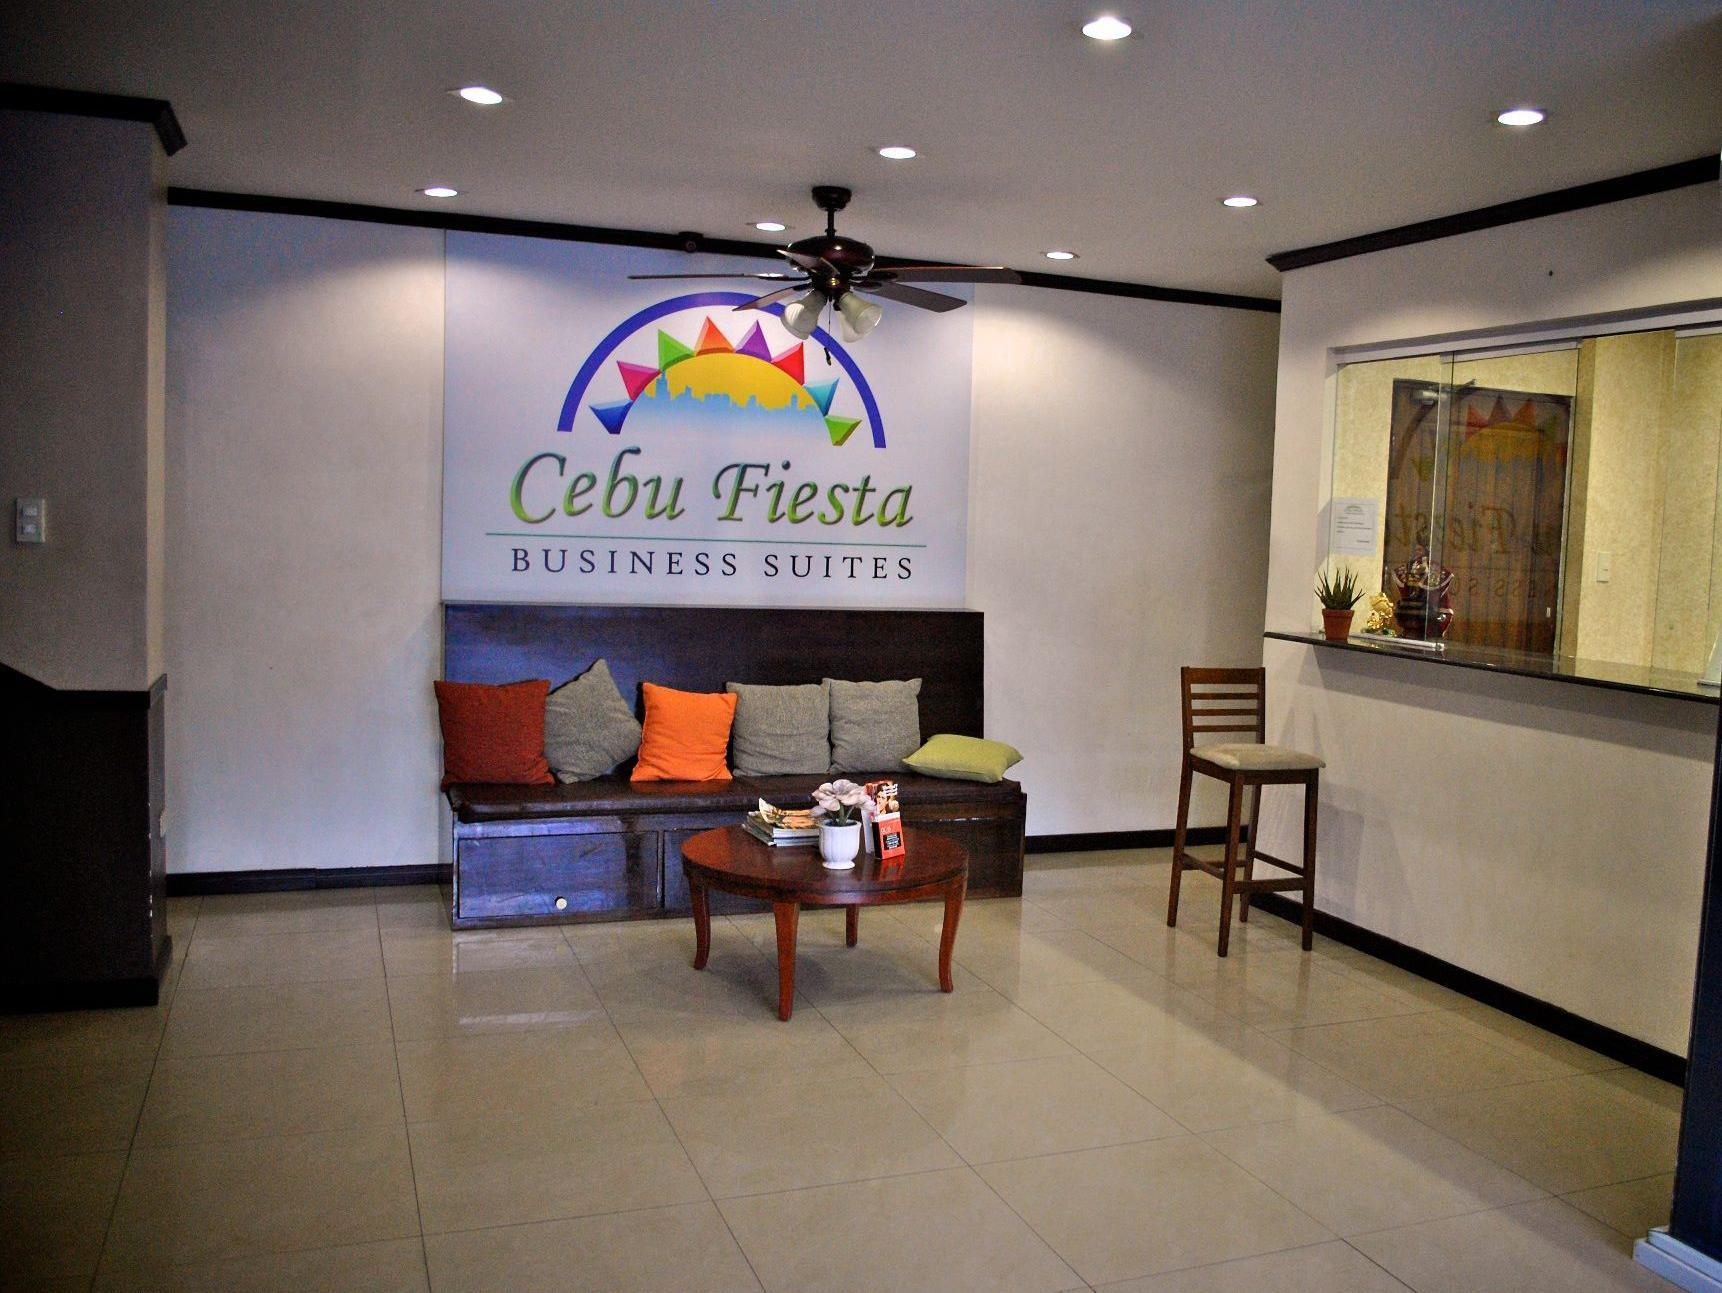 Cebu Fiesta Business Suites Cebu - Tampilan Luar Hotel